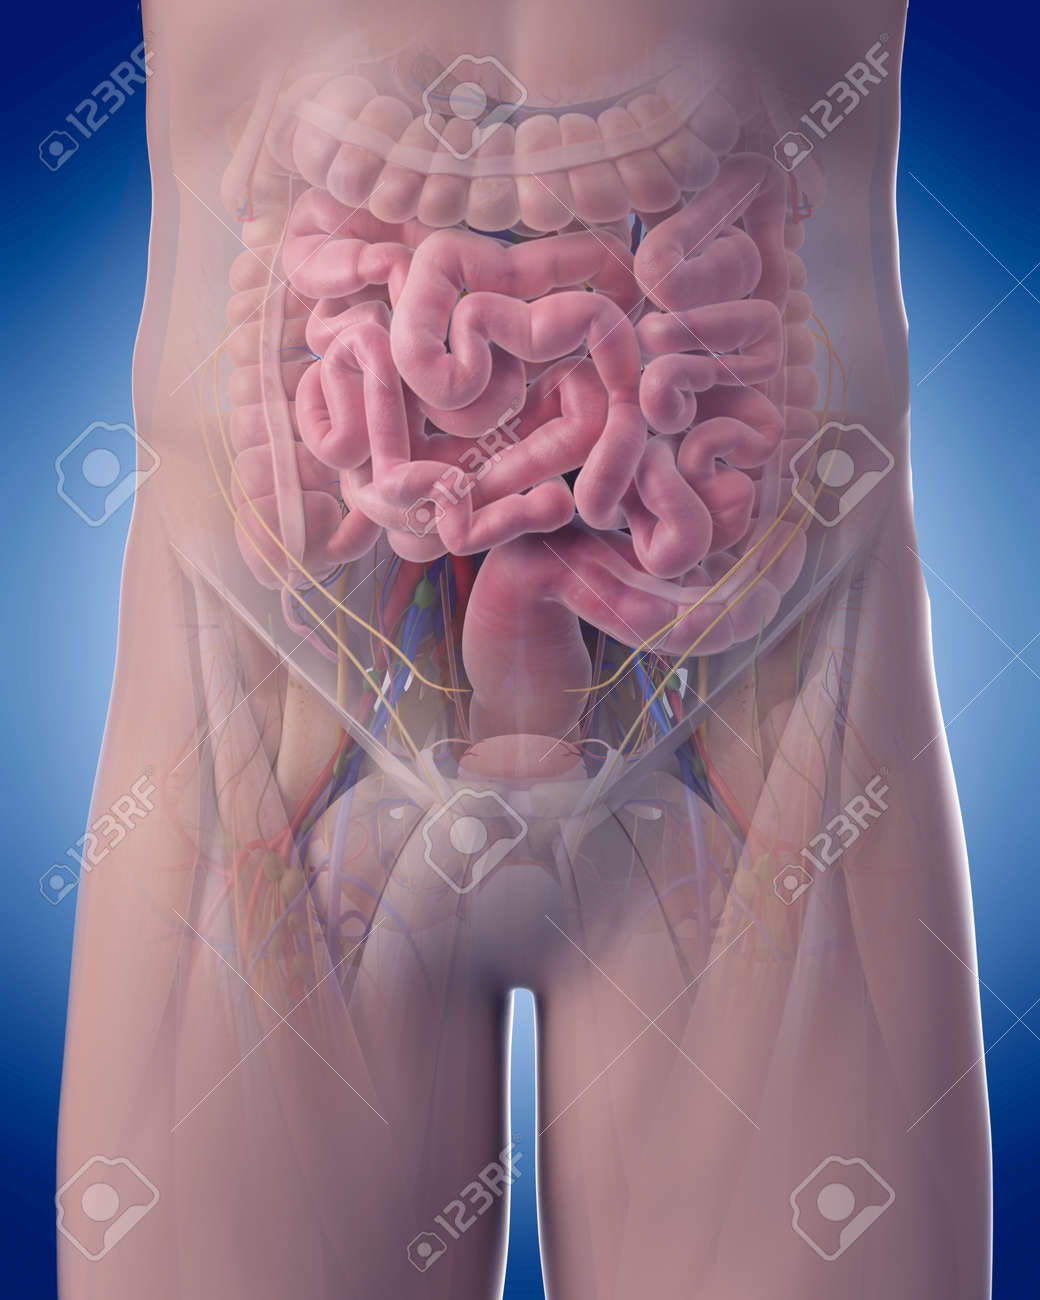 Medically Accurate Illustration Of Abdominal Anatomy Stock Photo ...